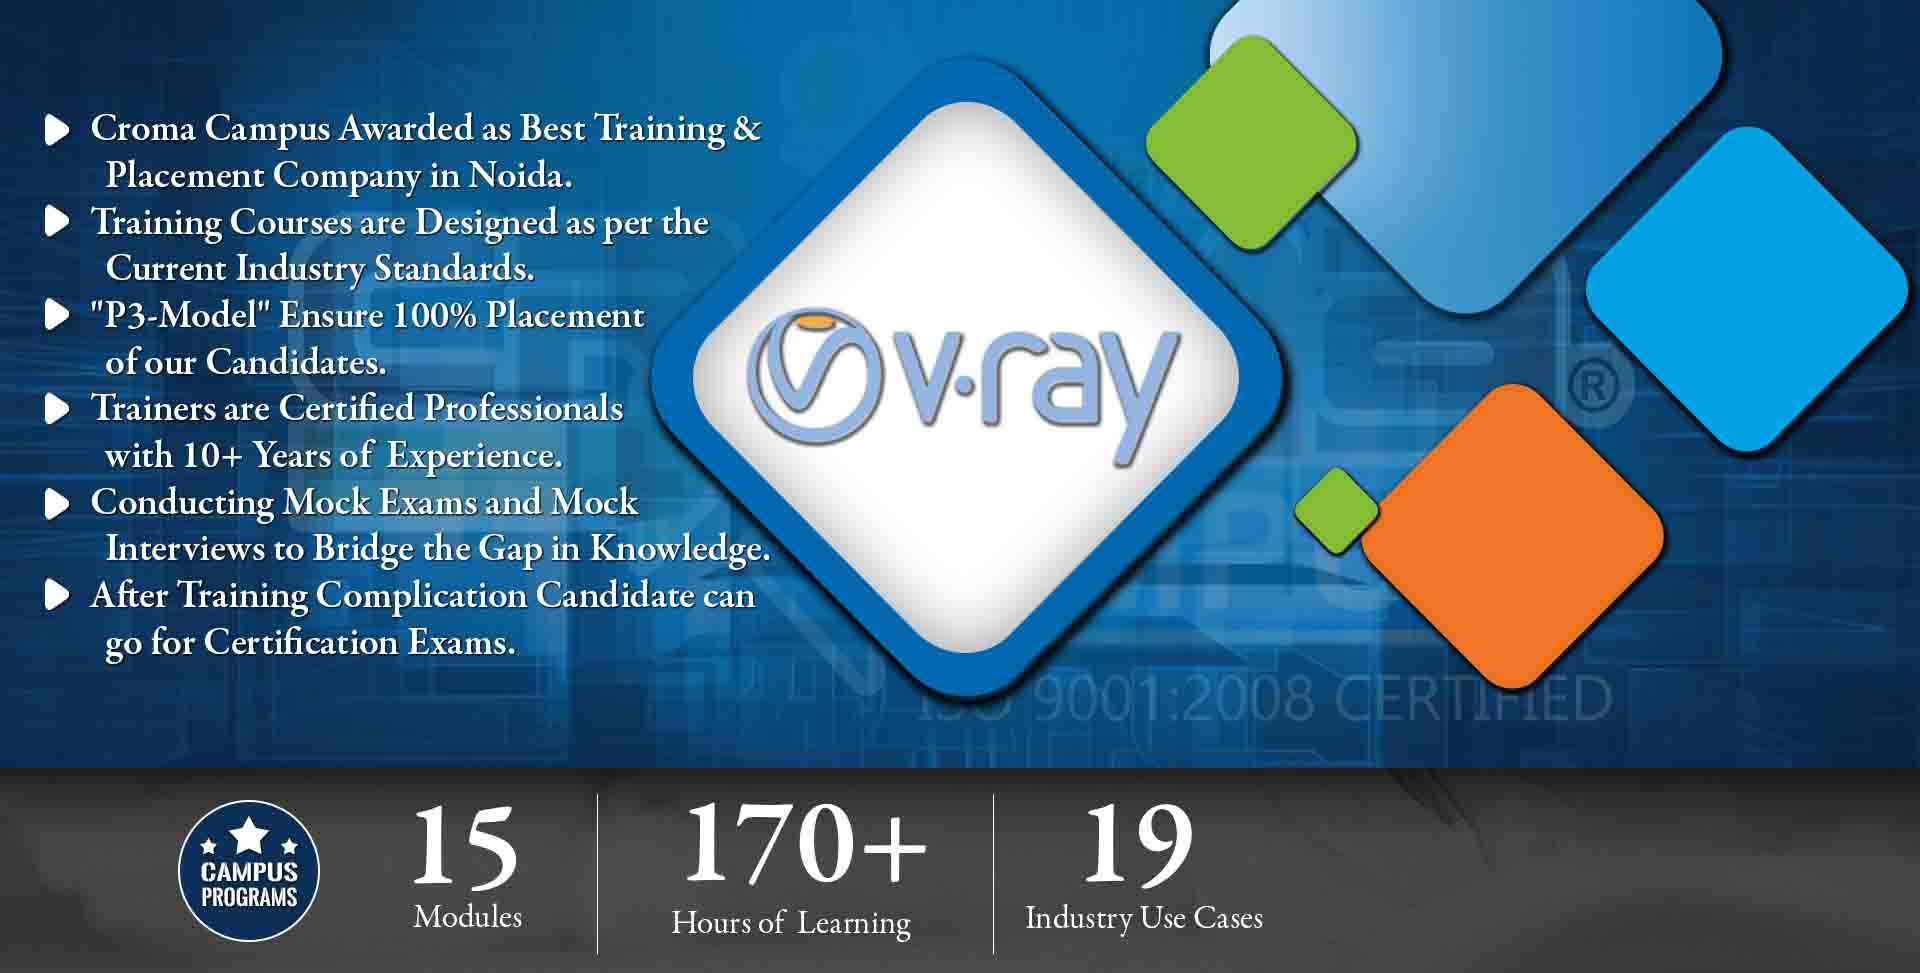 Vray Training in Delhi- Croma Campus